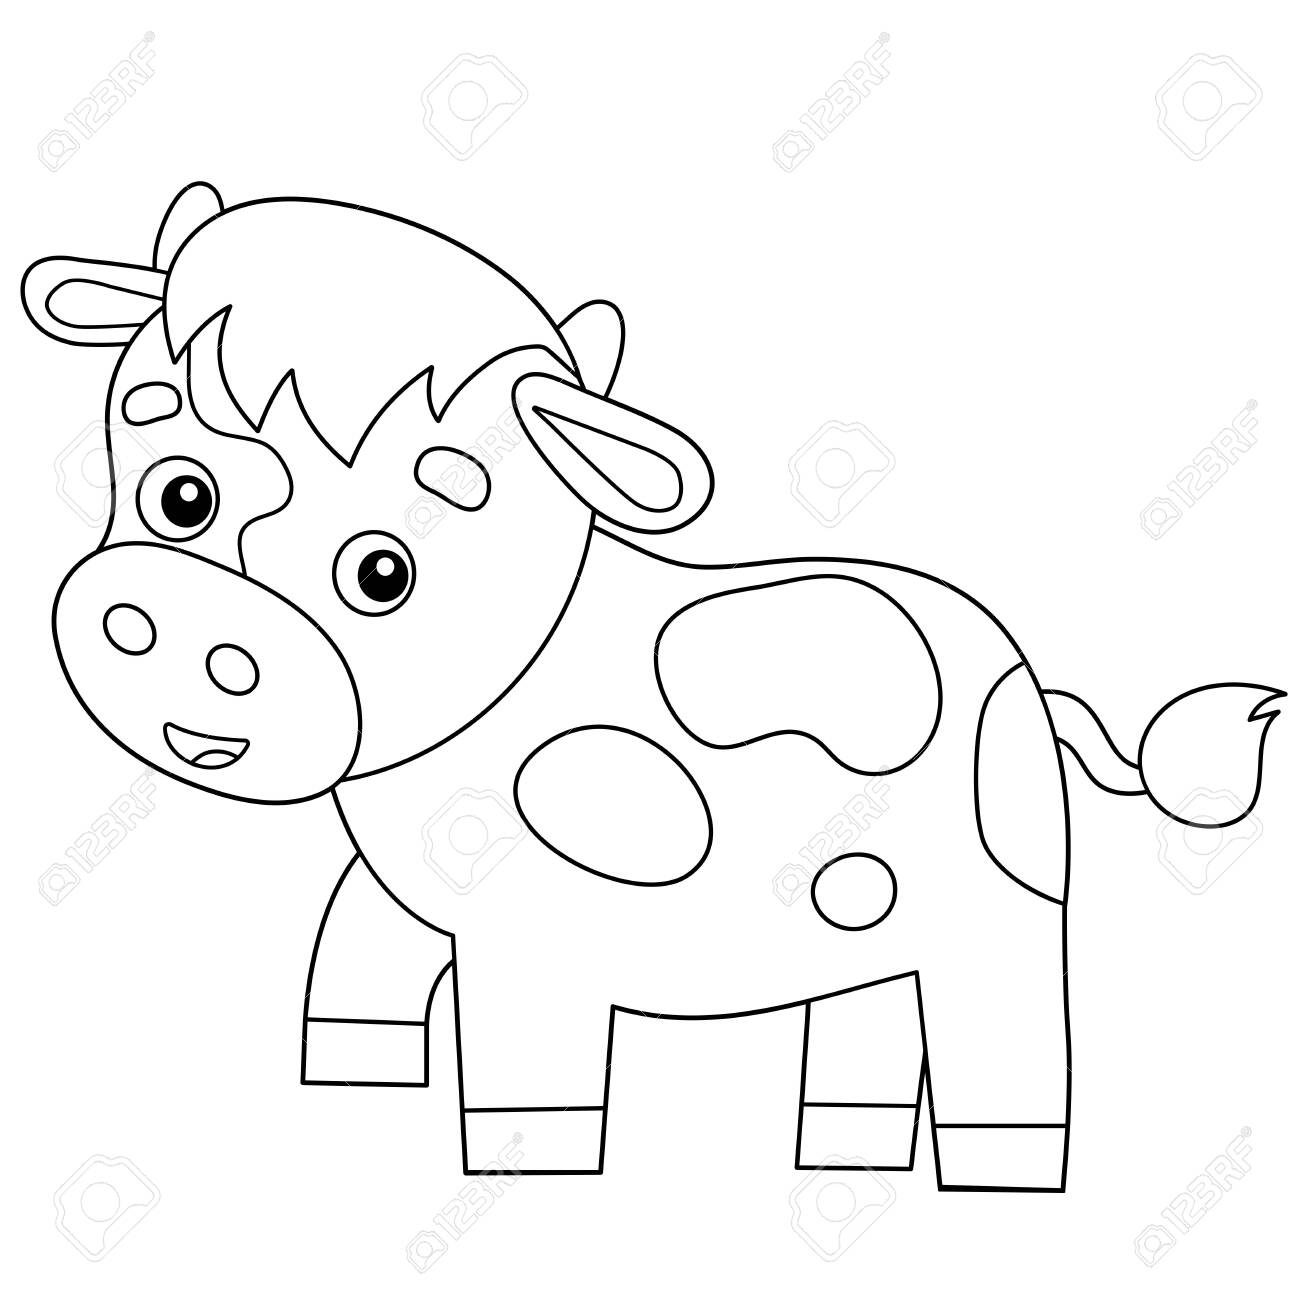 Farm Animal Coloring Pages - Get Coloring Pages | 1300x1300